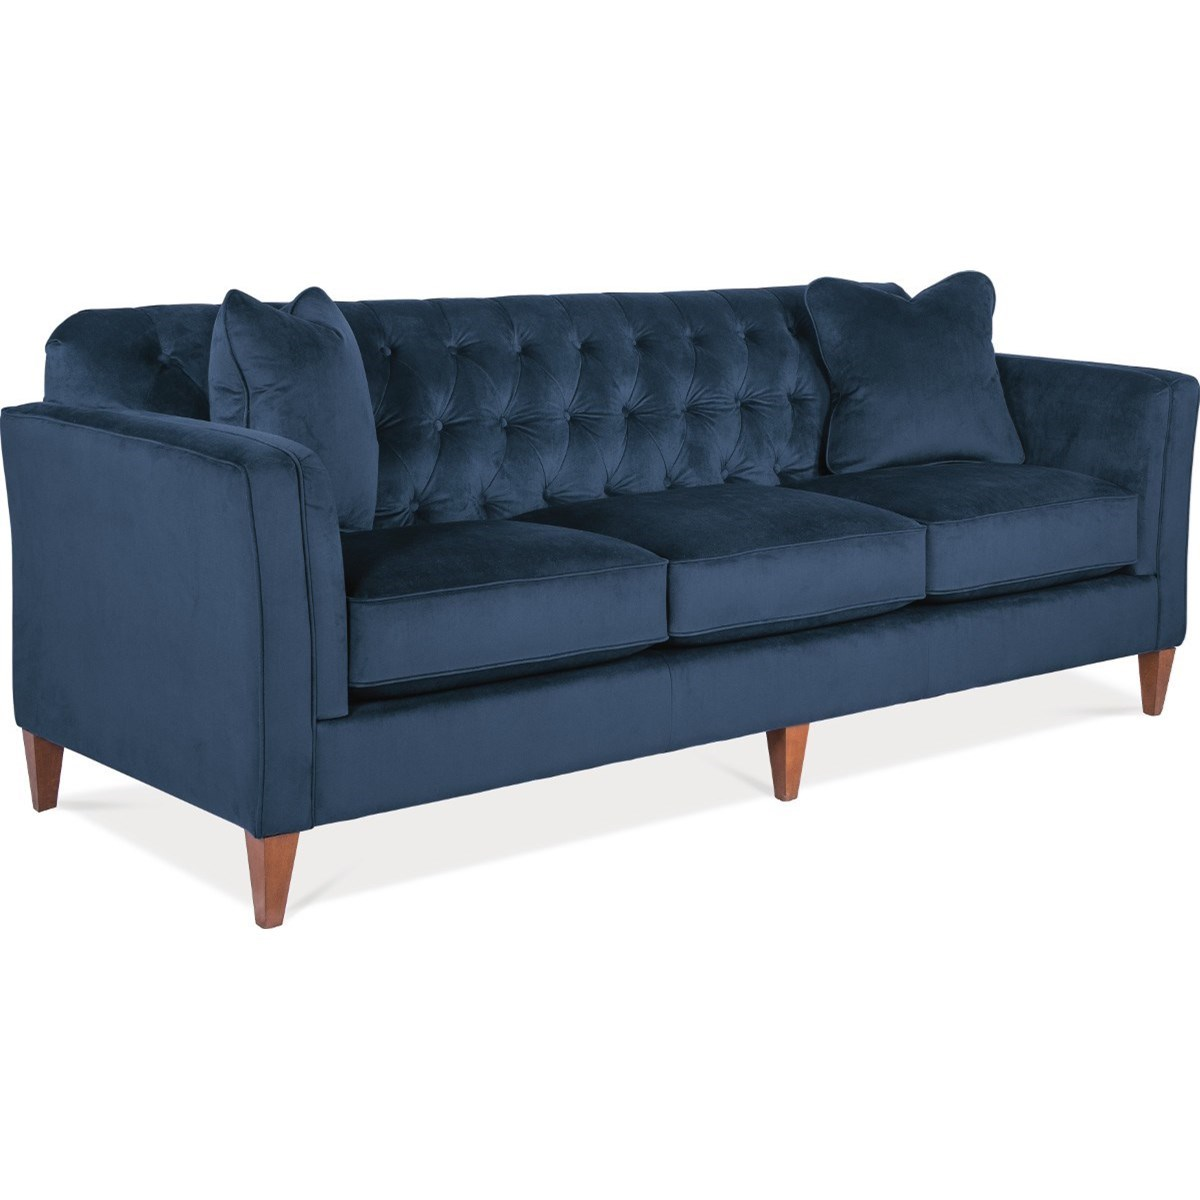 Alexandria Premier Sofa by La-Z-Boy at Fisher Home Furnishings